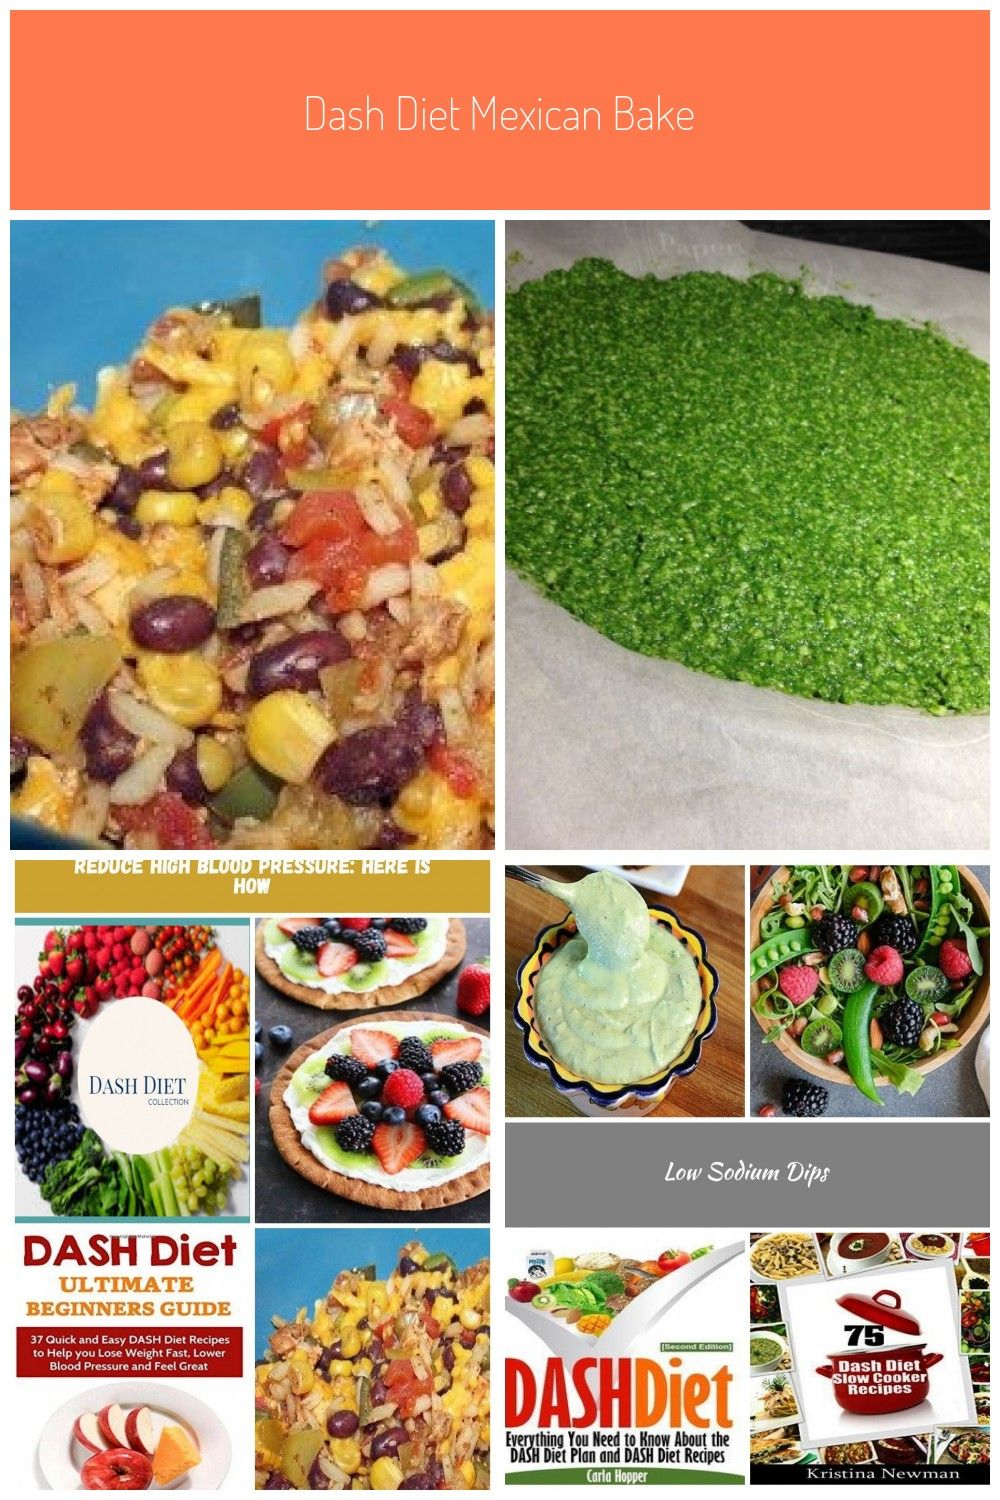 DASH Diet Mexican Bake Recipe  diat DASH Diet Mexican Bake